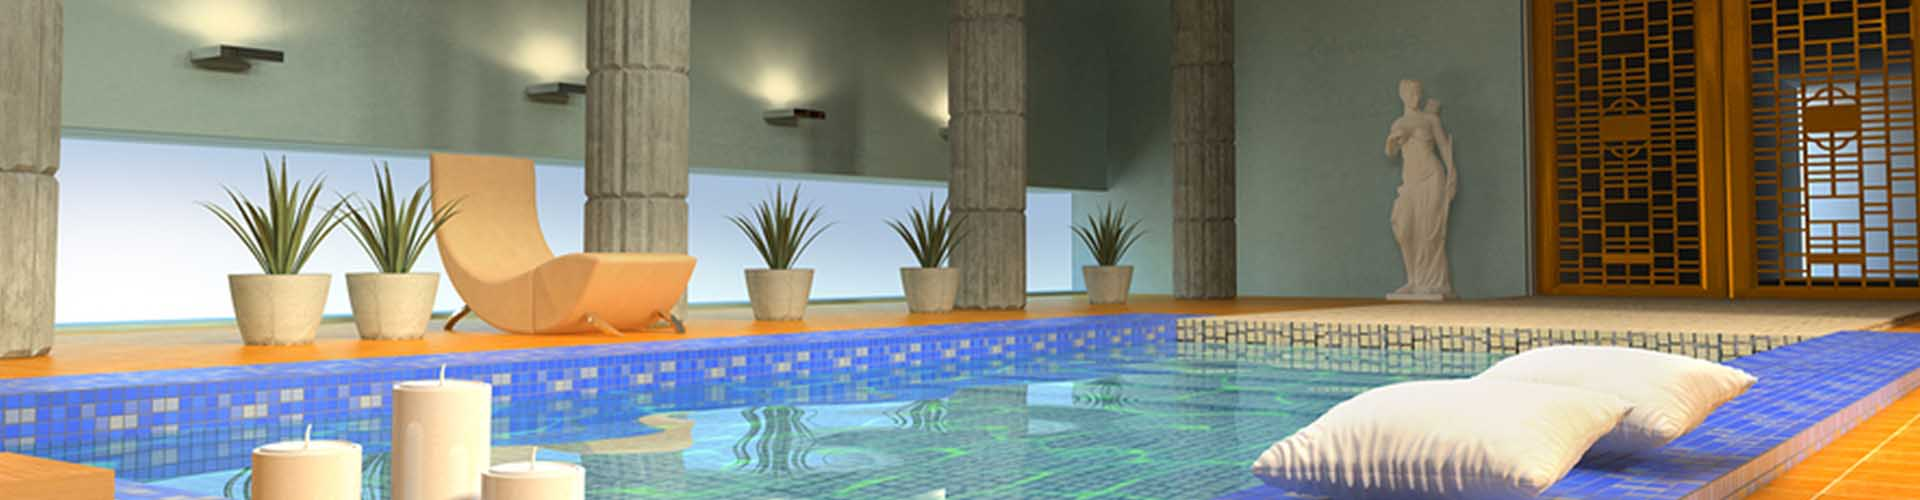 Indoor Pool mit Mosaiksteinen